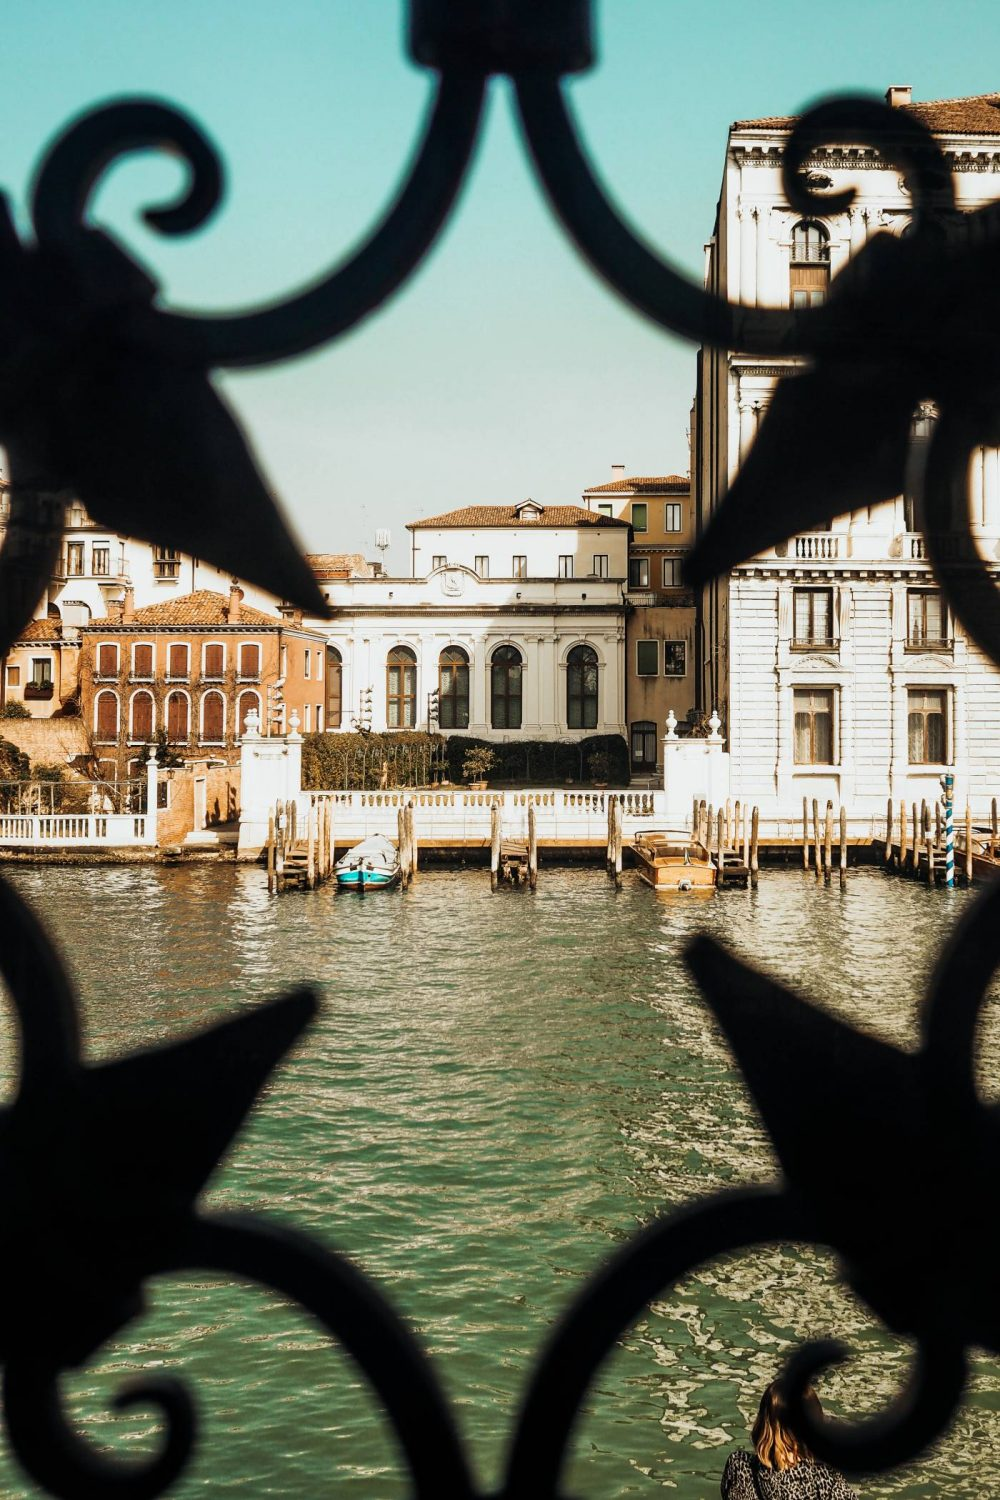 View of the Grand Canal from Peggy Guggenheim Art Gallery